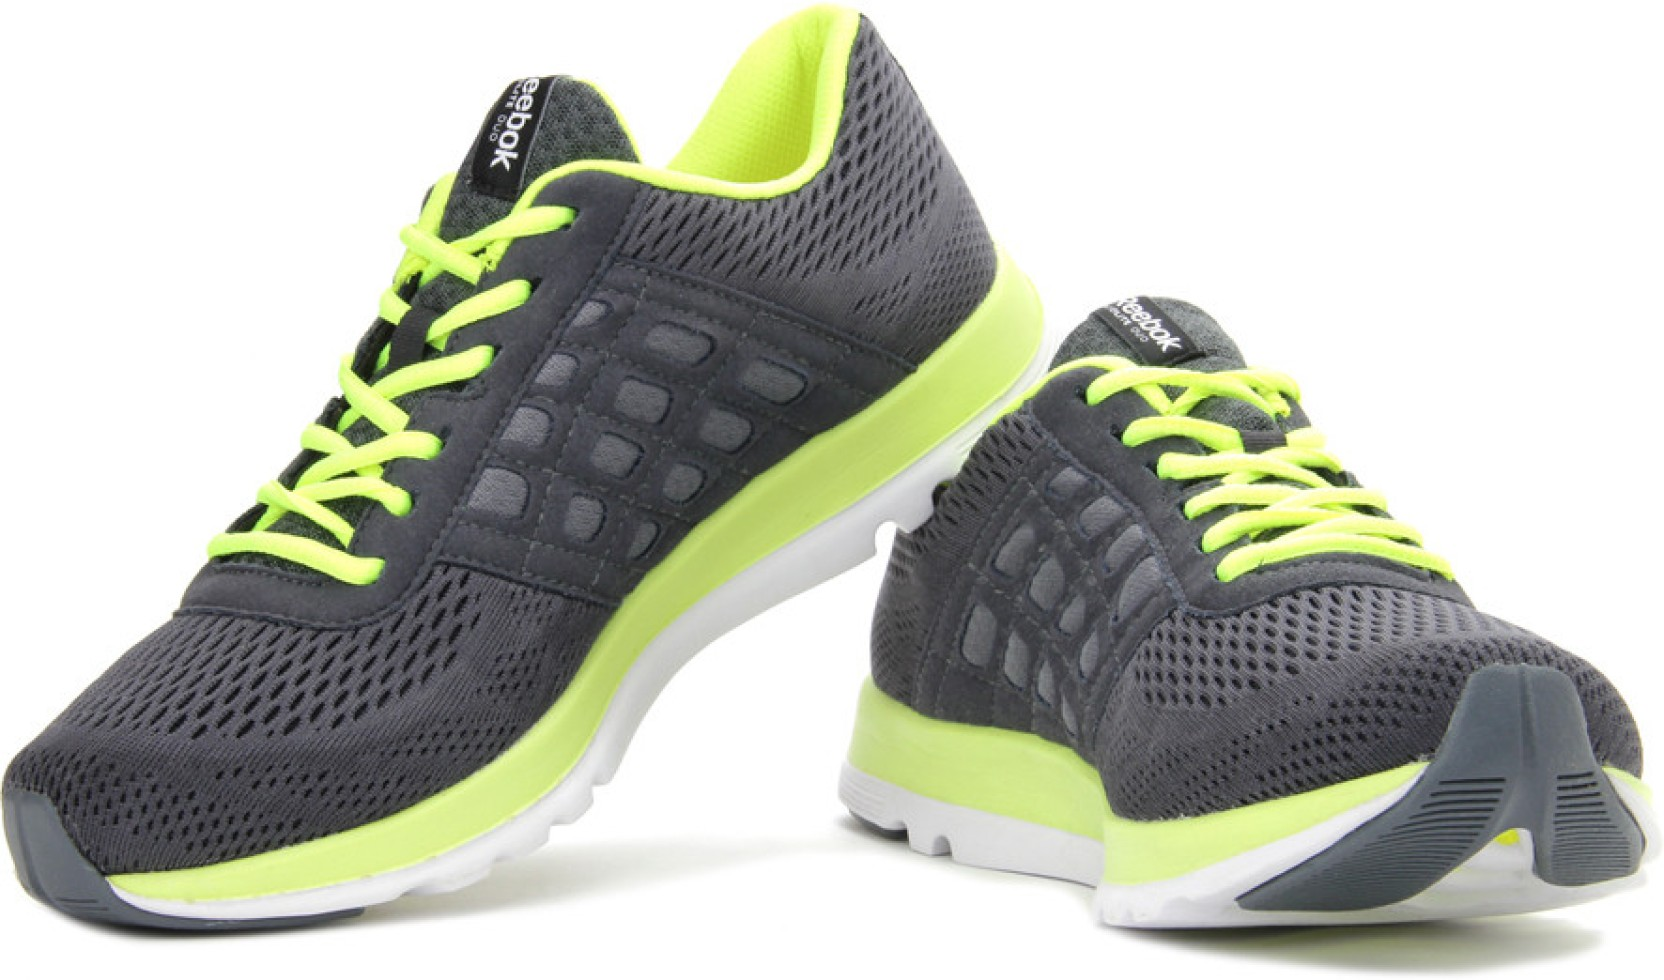 REEBOK Sublite Duo Smooth Running Shoes For Men - Buy Grey e6bbc5395